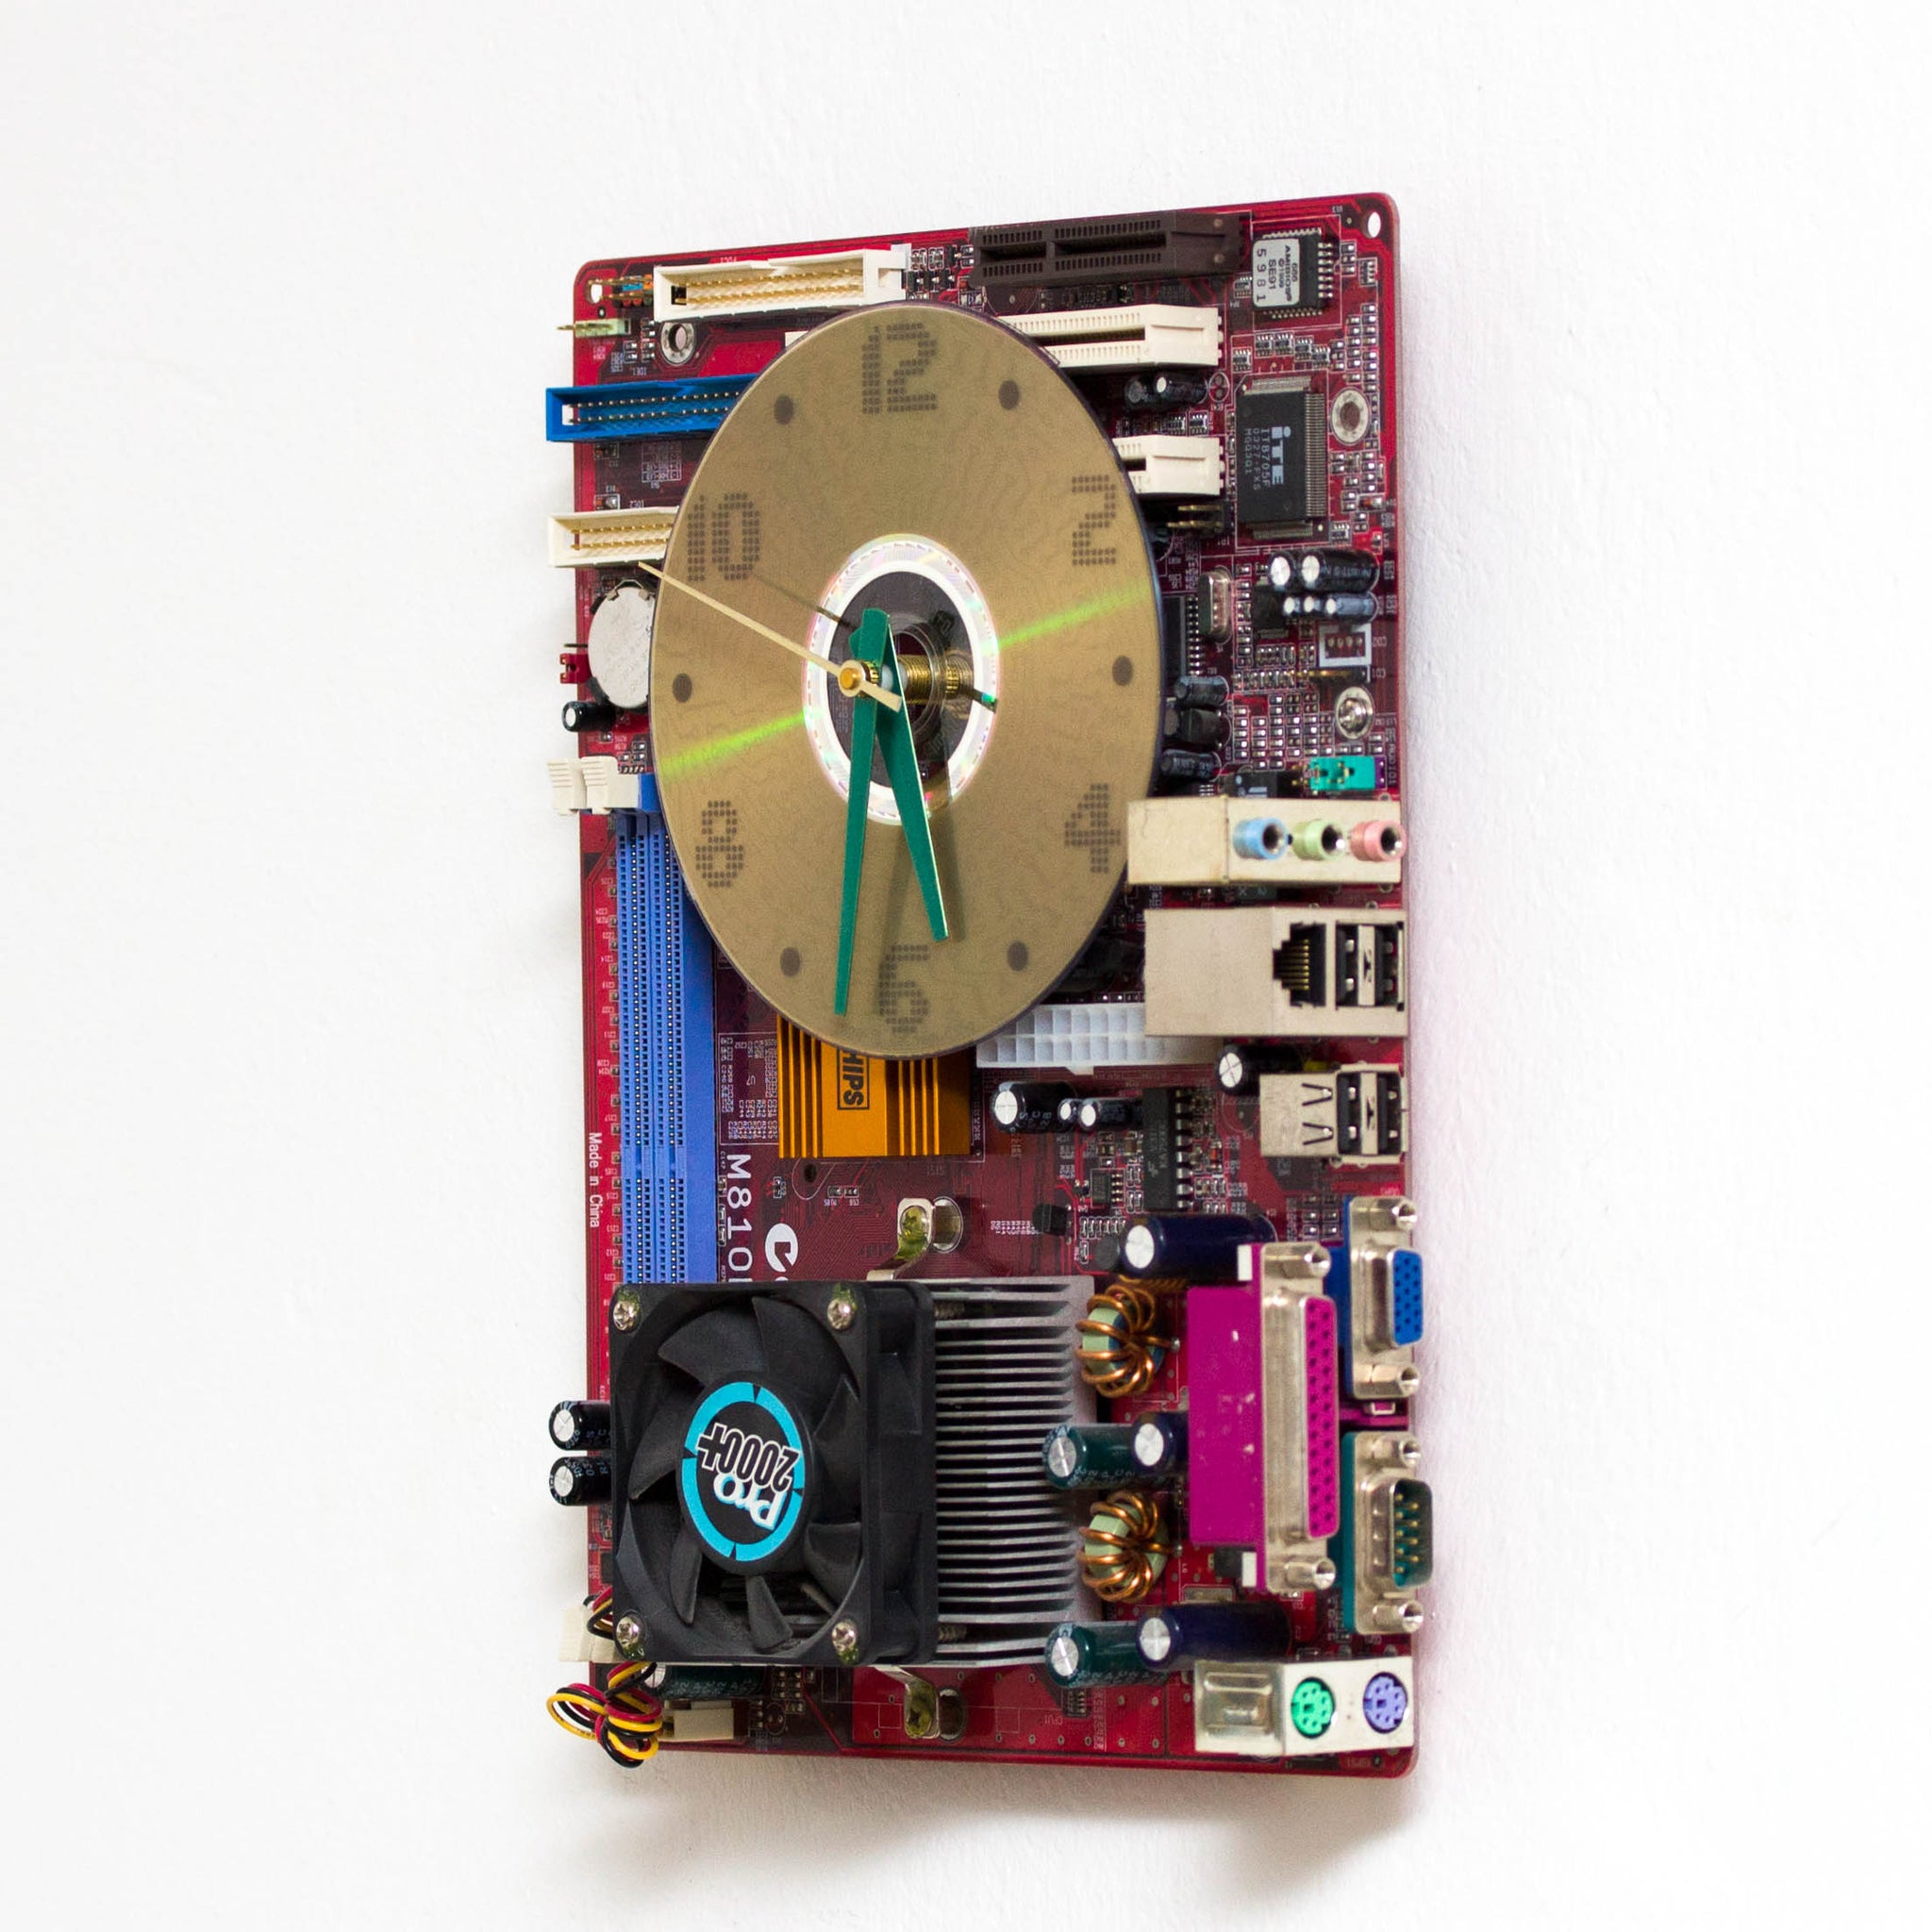 Geeky Wall Clock made of red Circuit Board